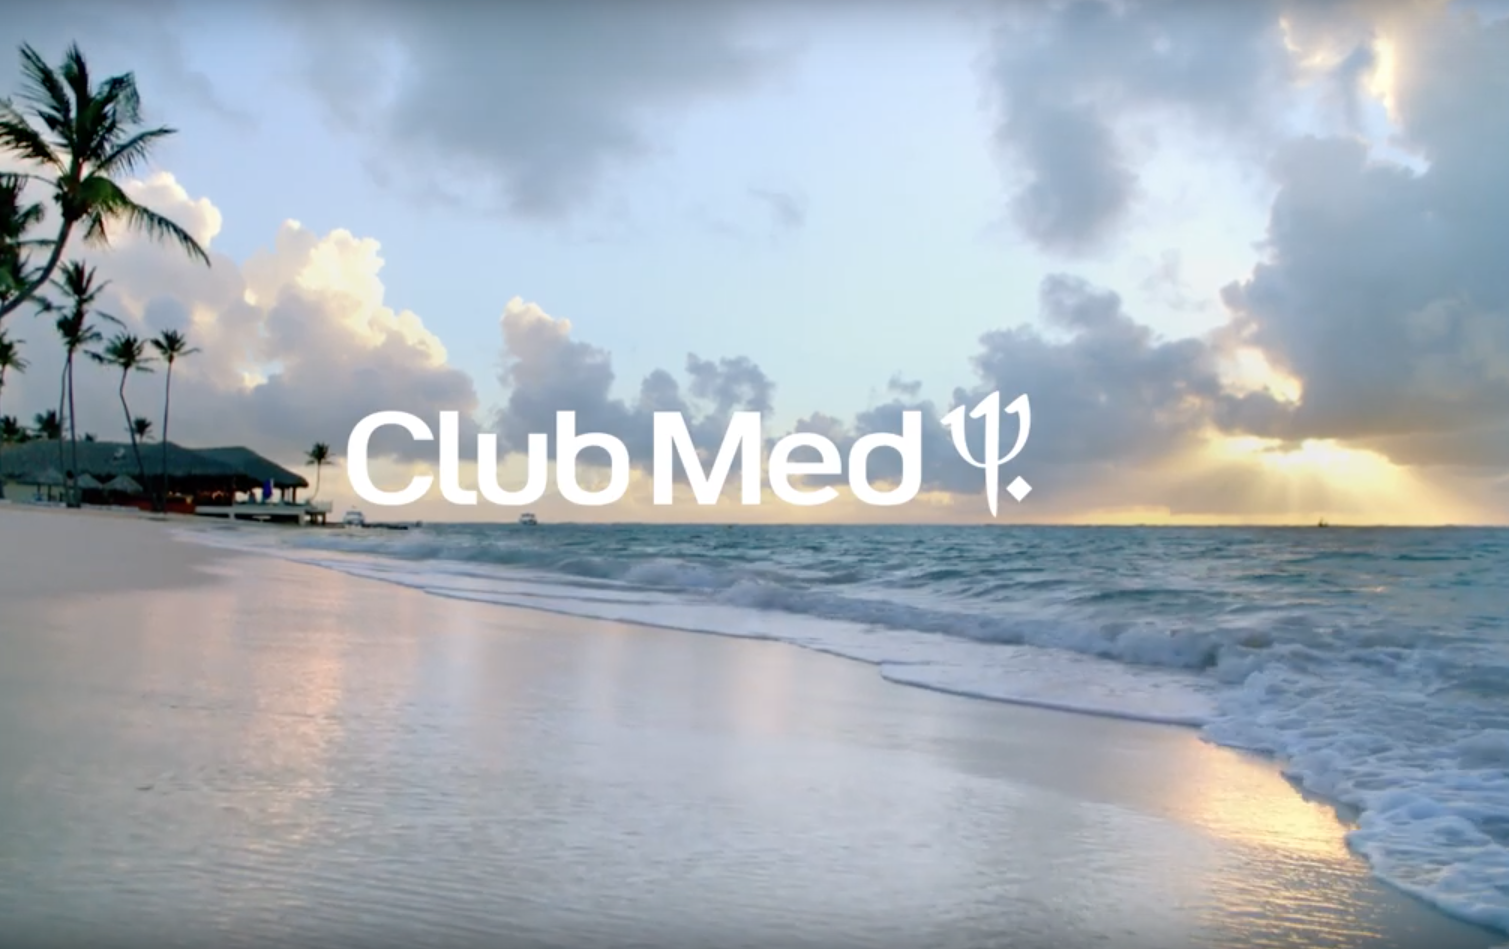 Club Med /  Natacha